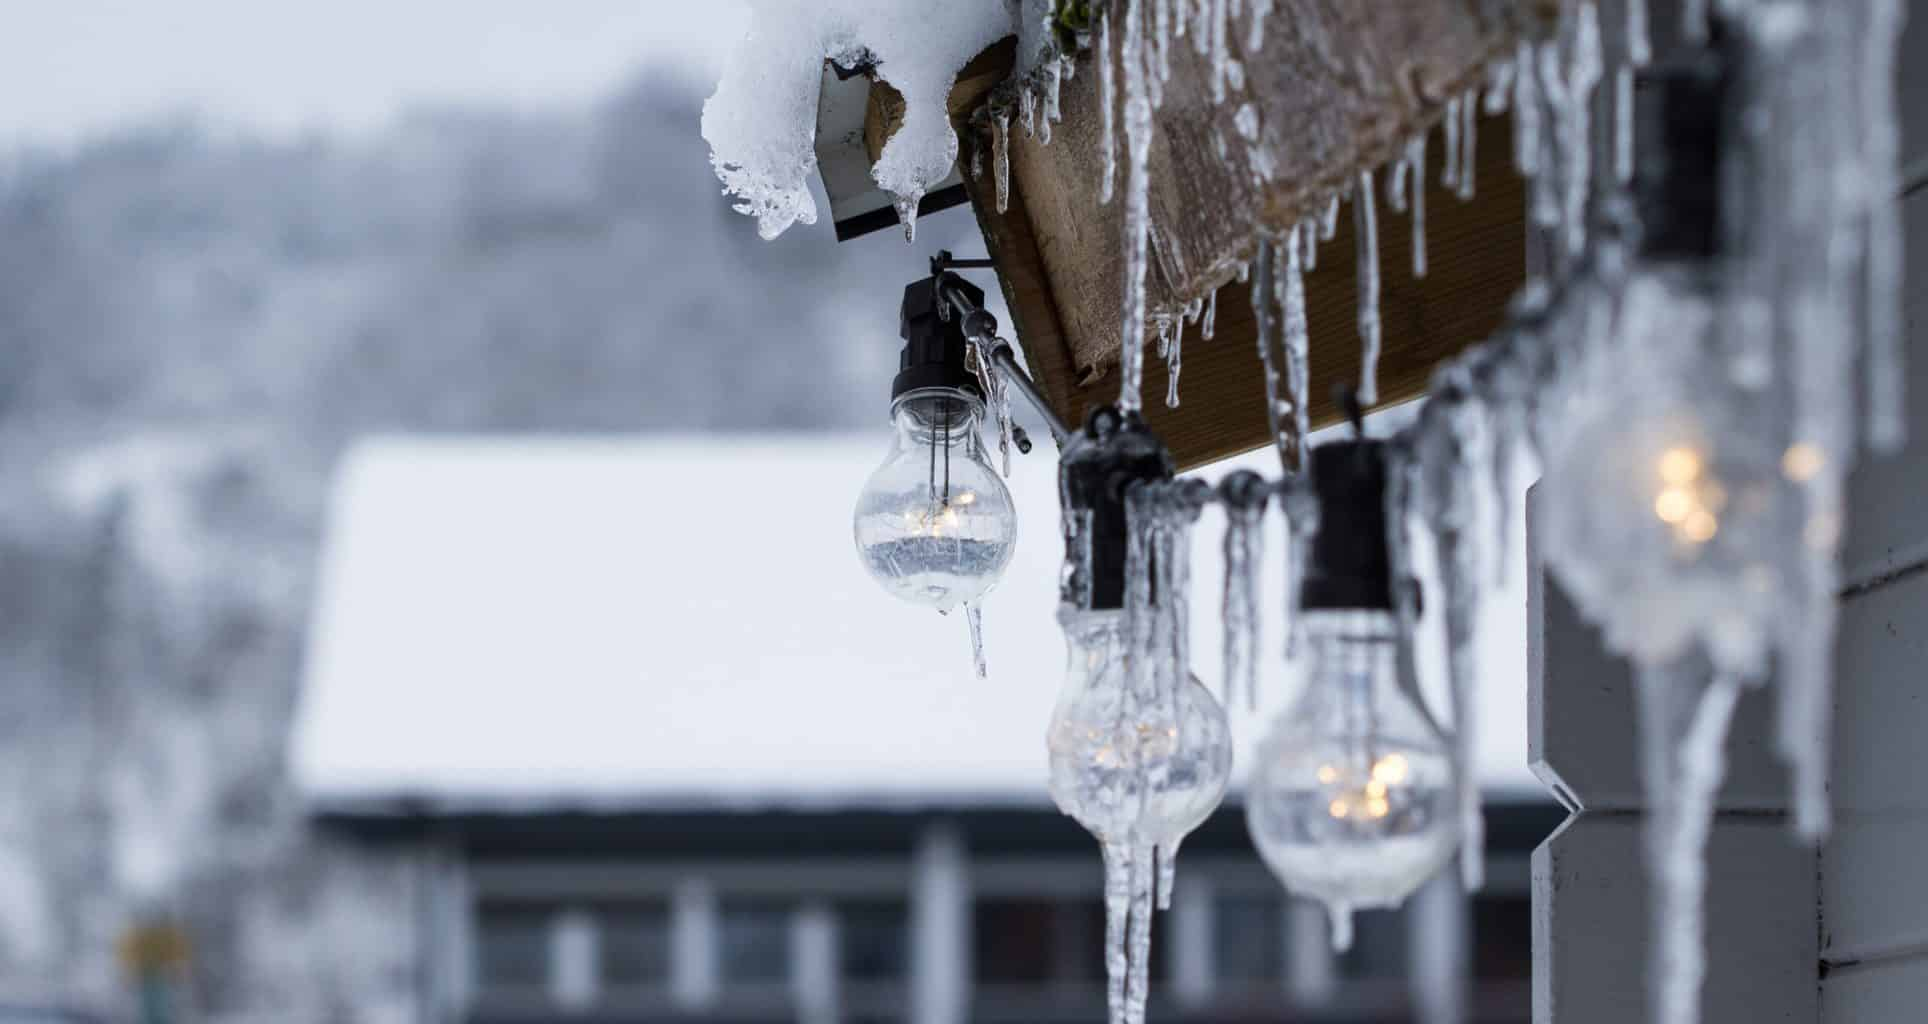 LED bulbs covered in frozen ice and cold weather